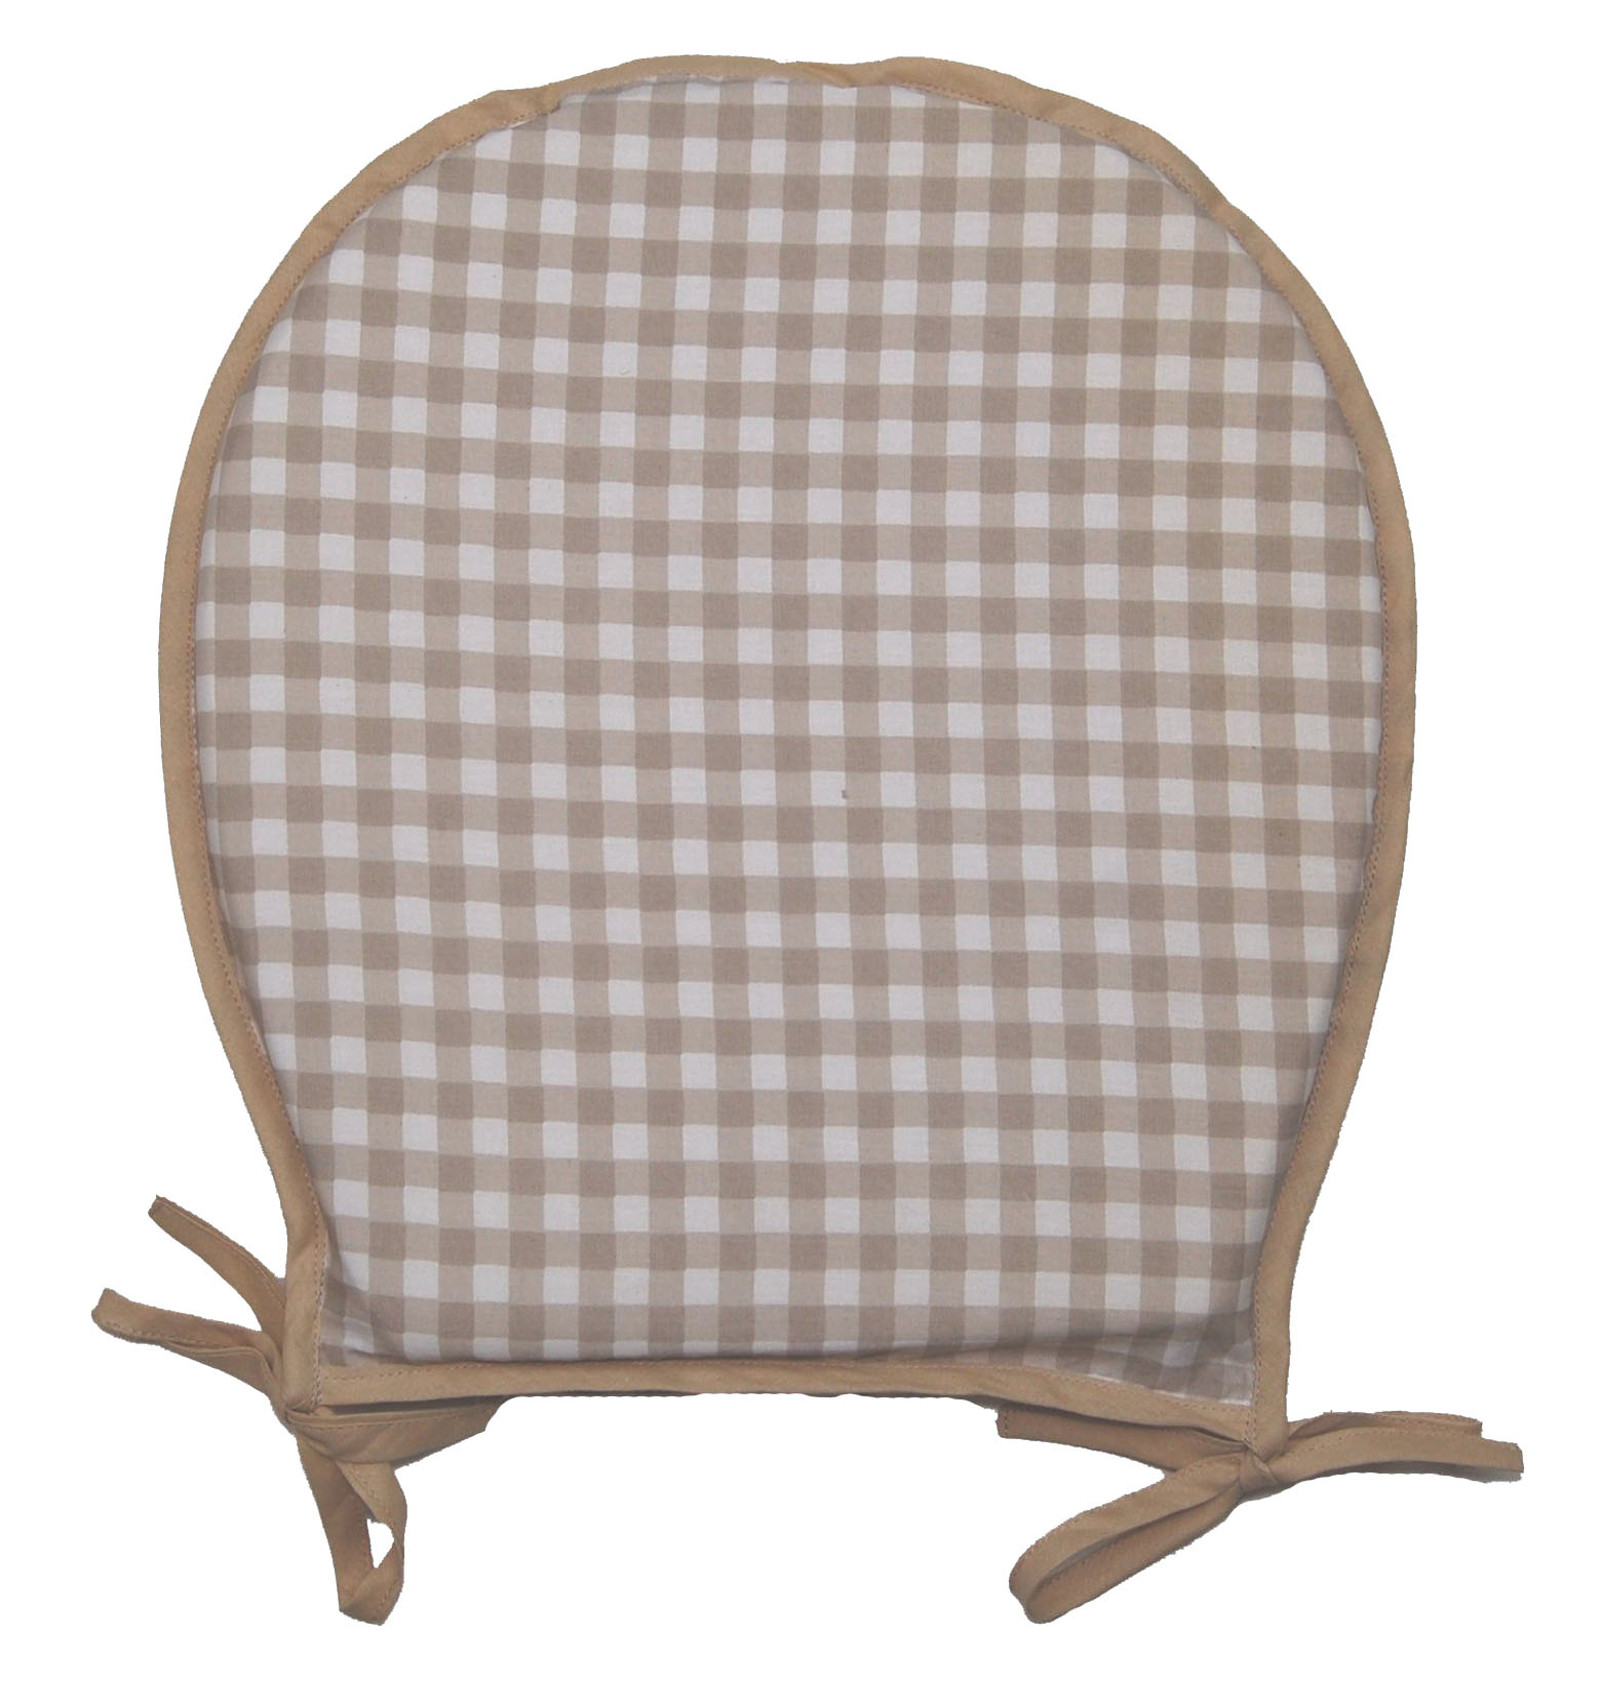 Garden Seat Pad 100% Cotton Gingham Check Kitchen Dining Outdoor